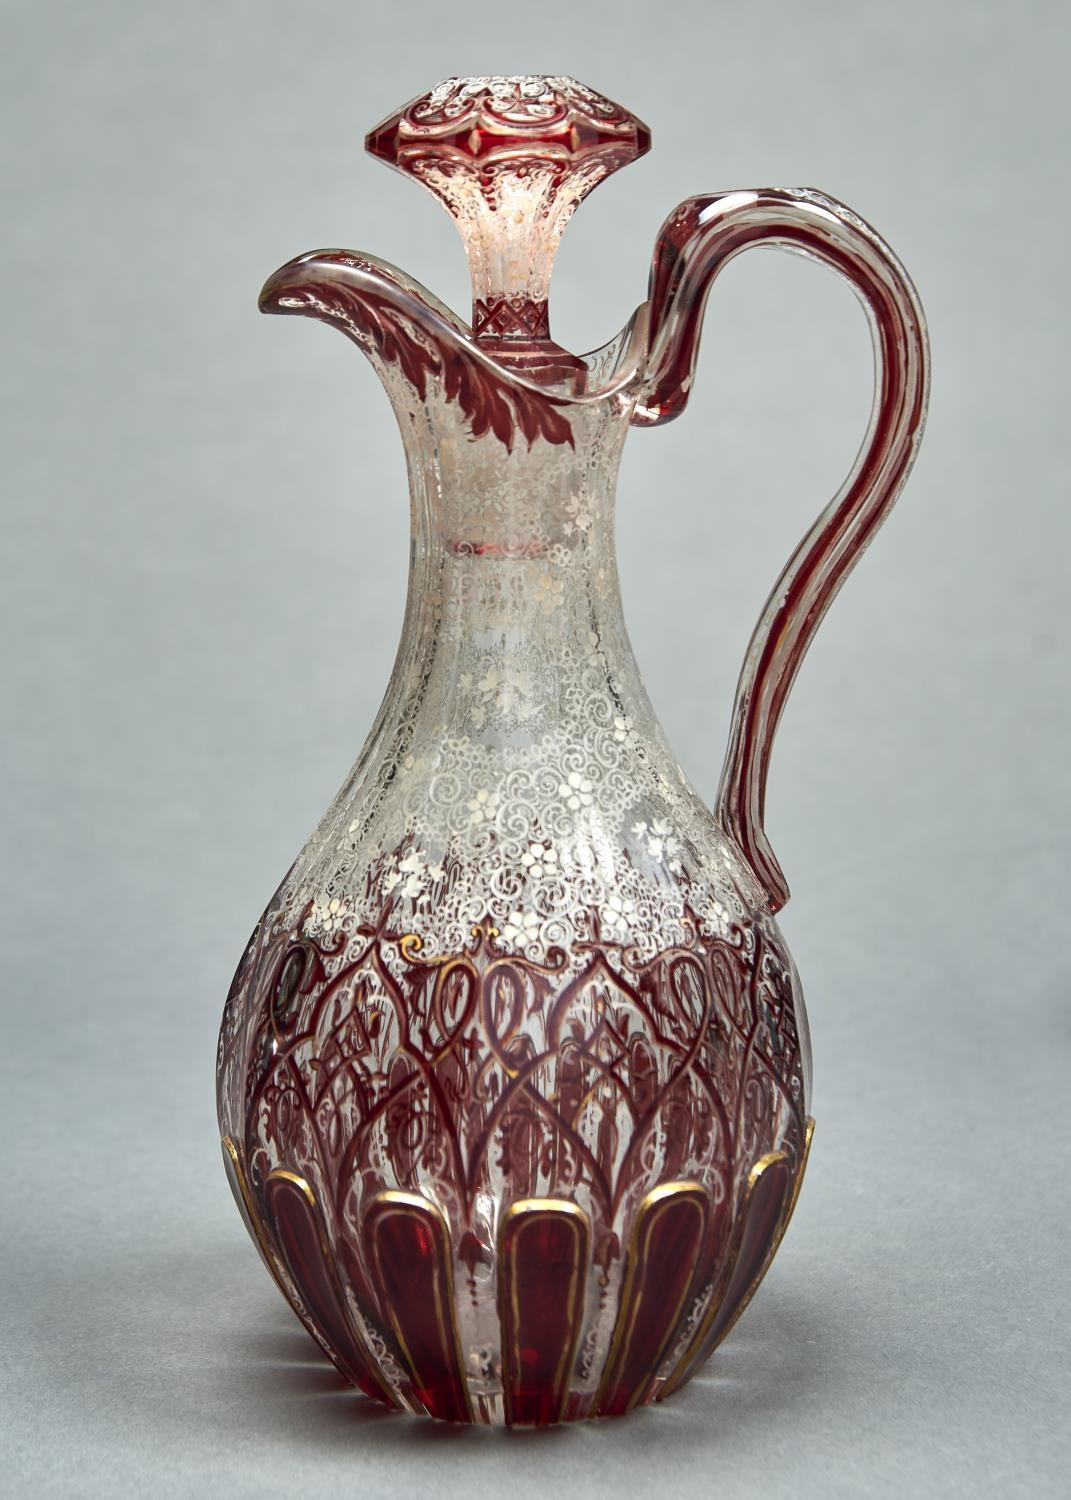 A RUBY FLASHED AND WHITE ENAMELLED GILT GLASS CLARET JUG AND STOPPER, C1860, 29CM H Typical handling